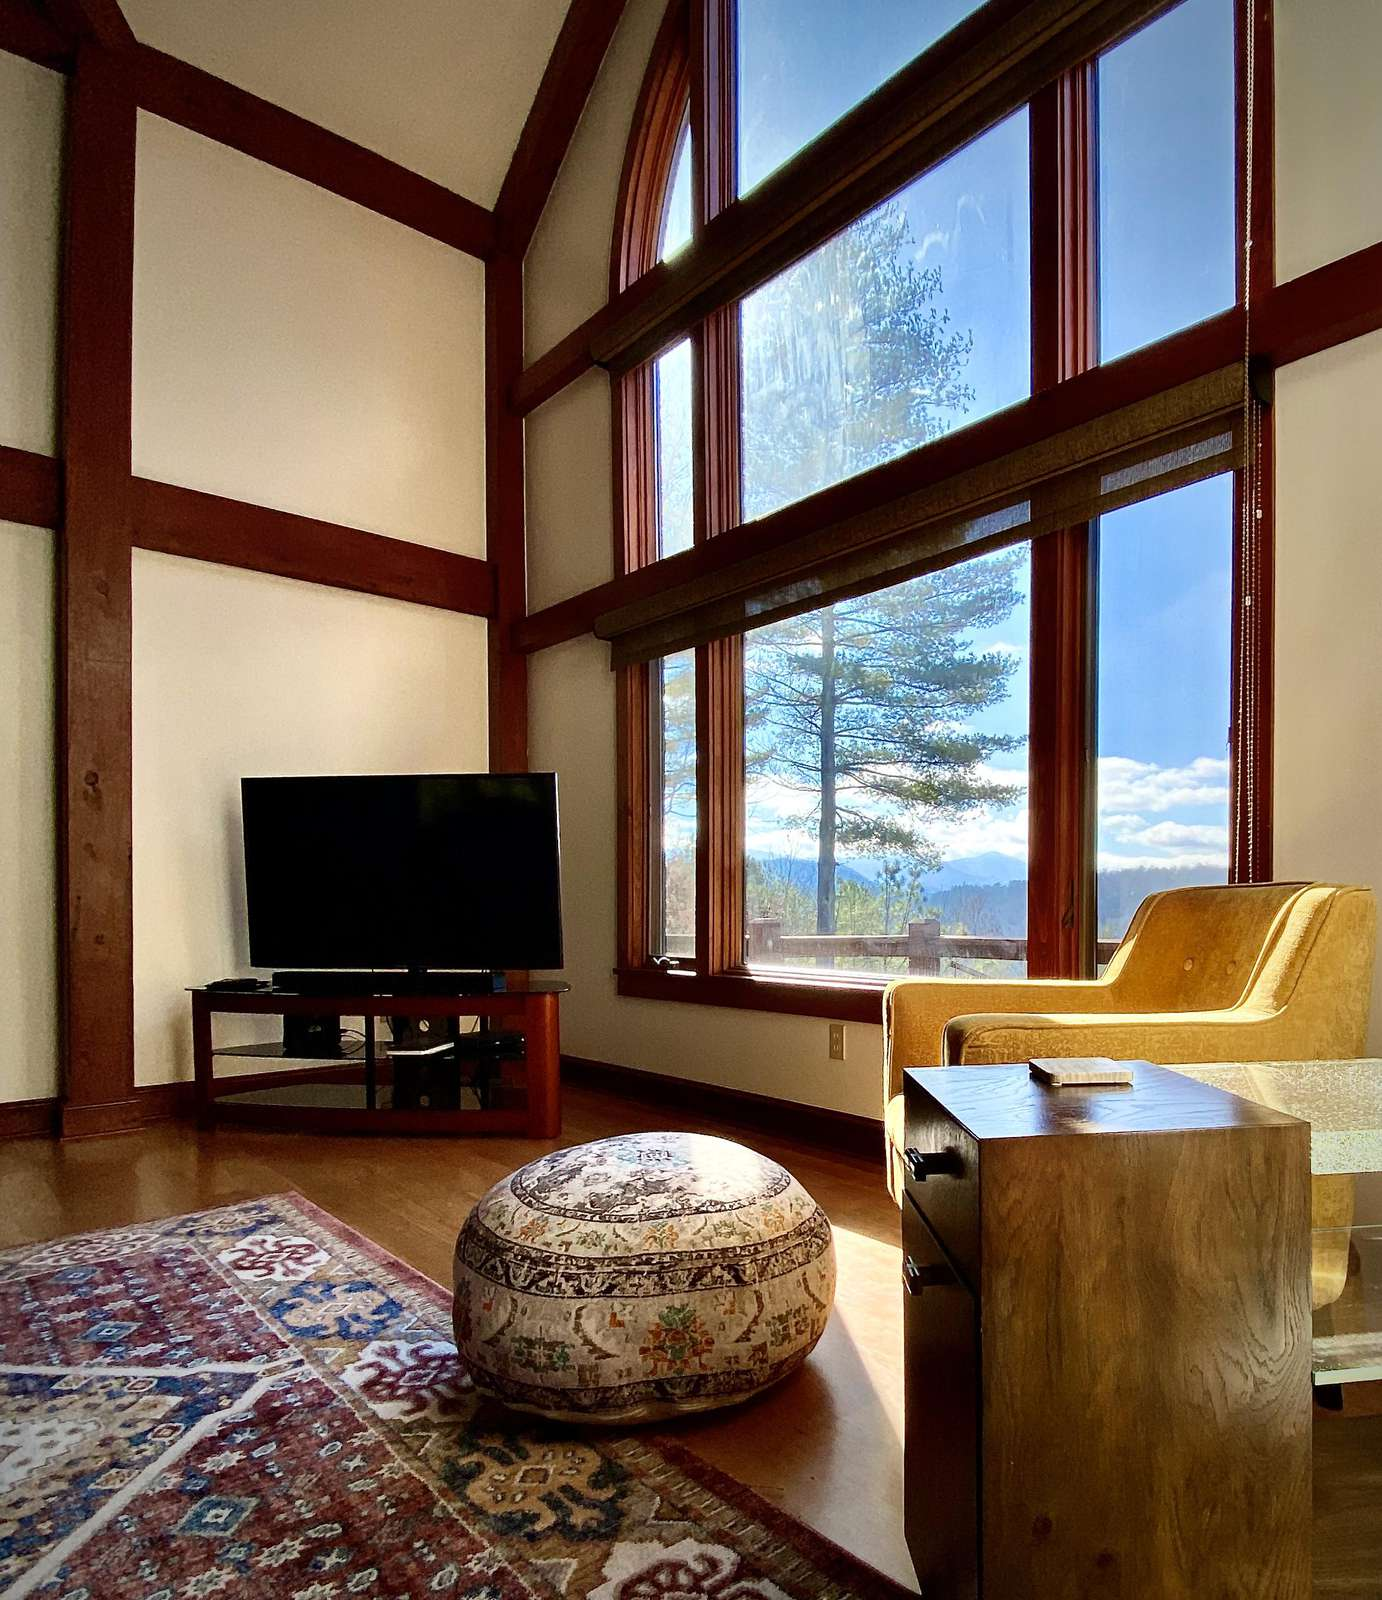 Cabin is Cozy yet large enough that you will easily find your privacy and space